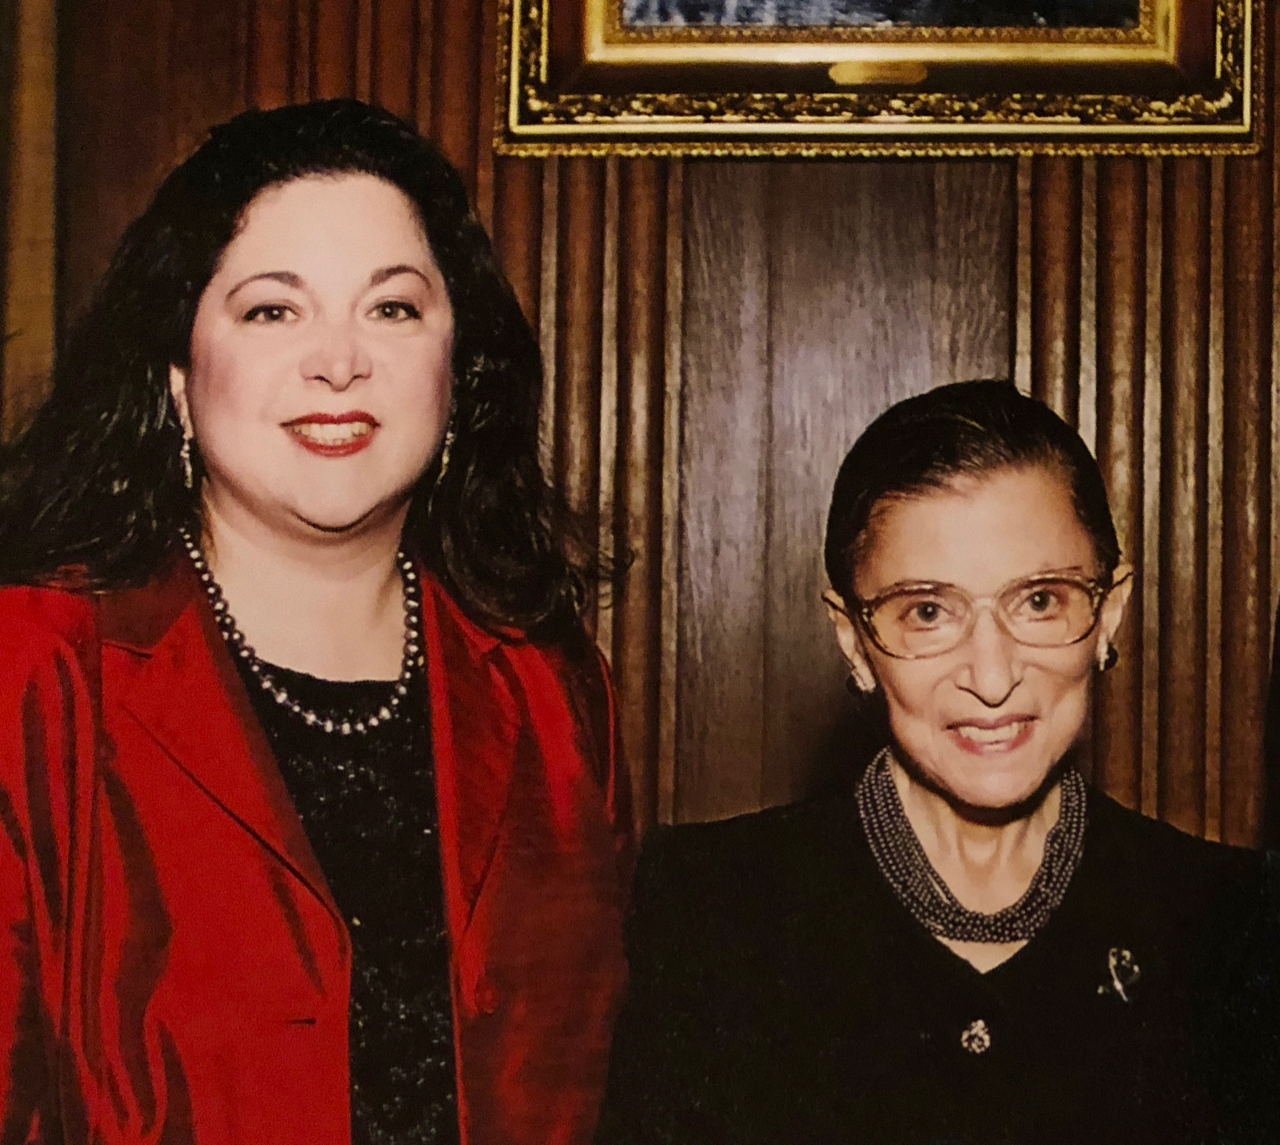 Ruth Bader Ginsburg: In the Tiger's Den